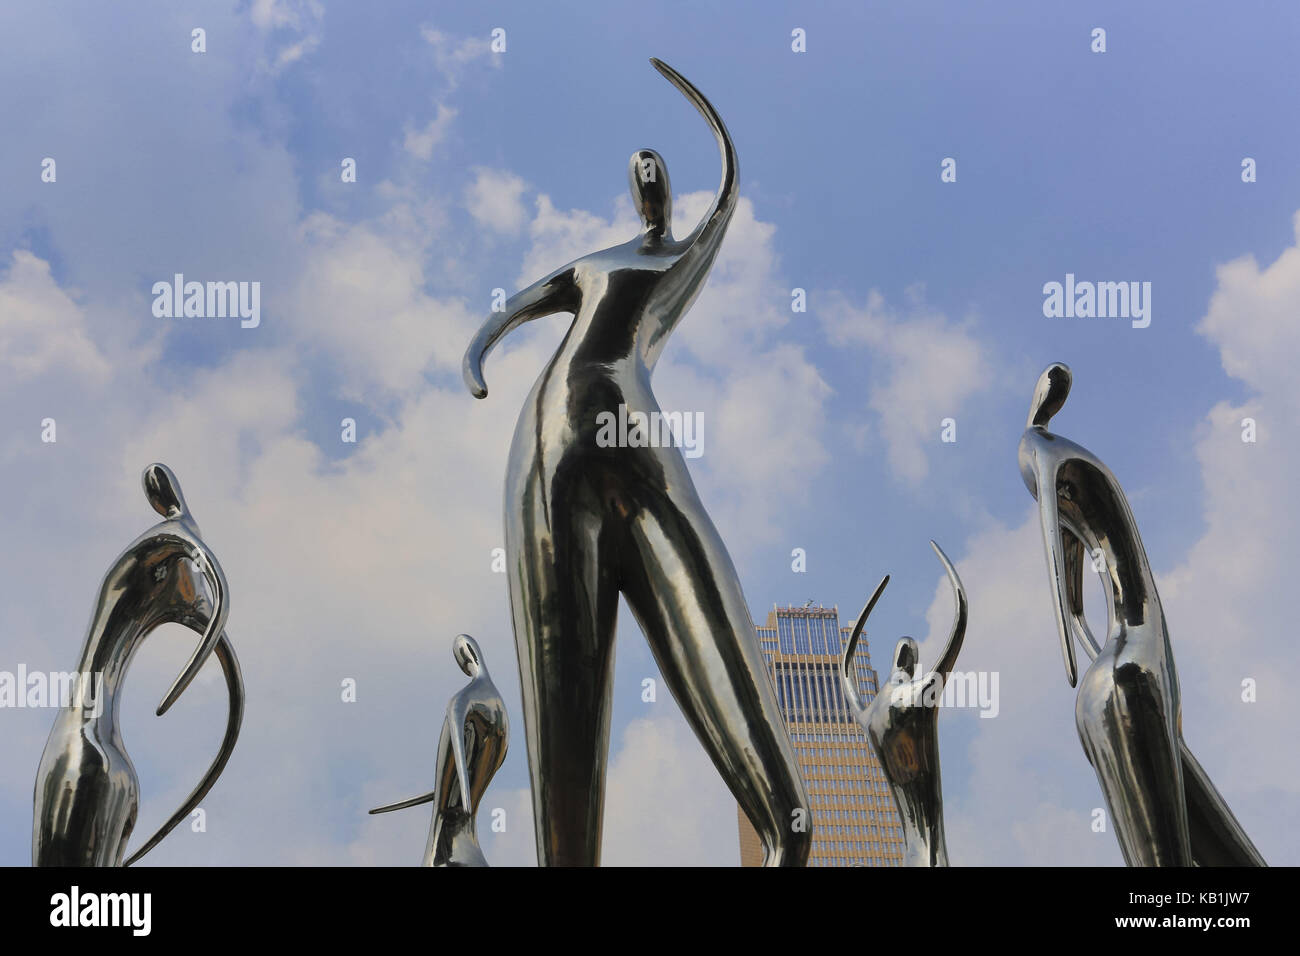 Sculptures on the street, Futian Becoming, Shenzhen, - Stock Image